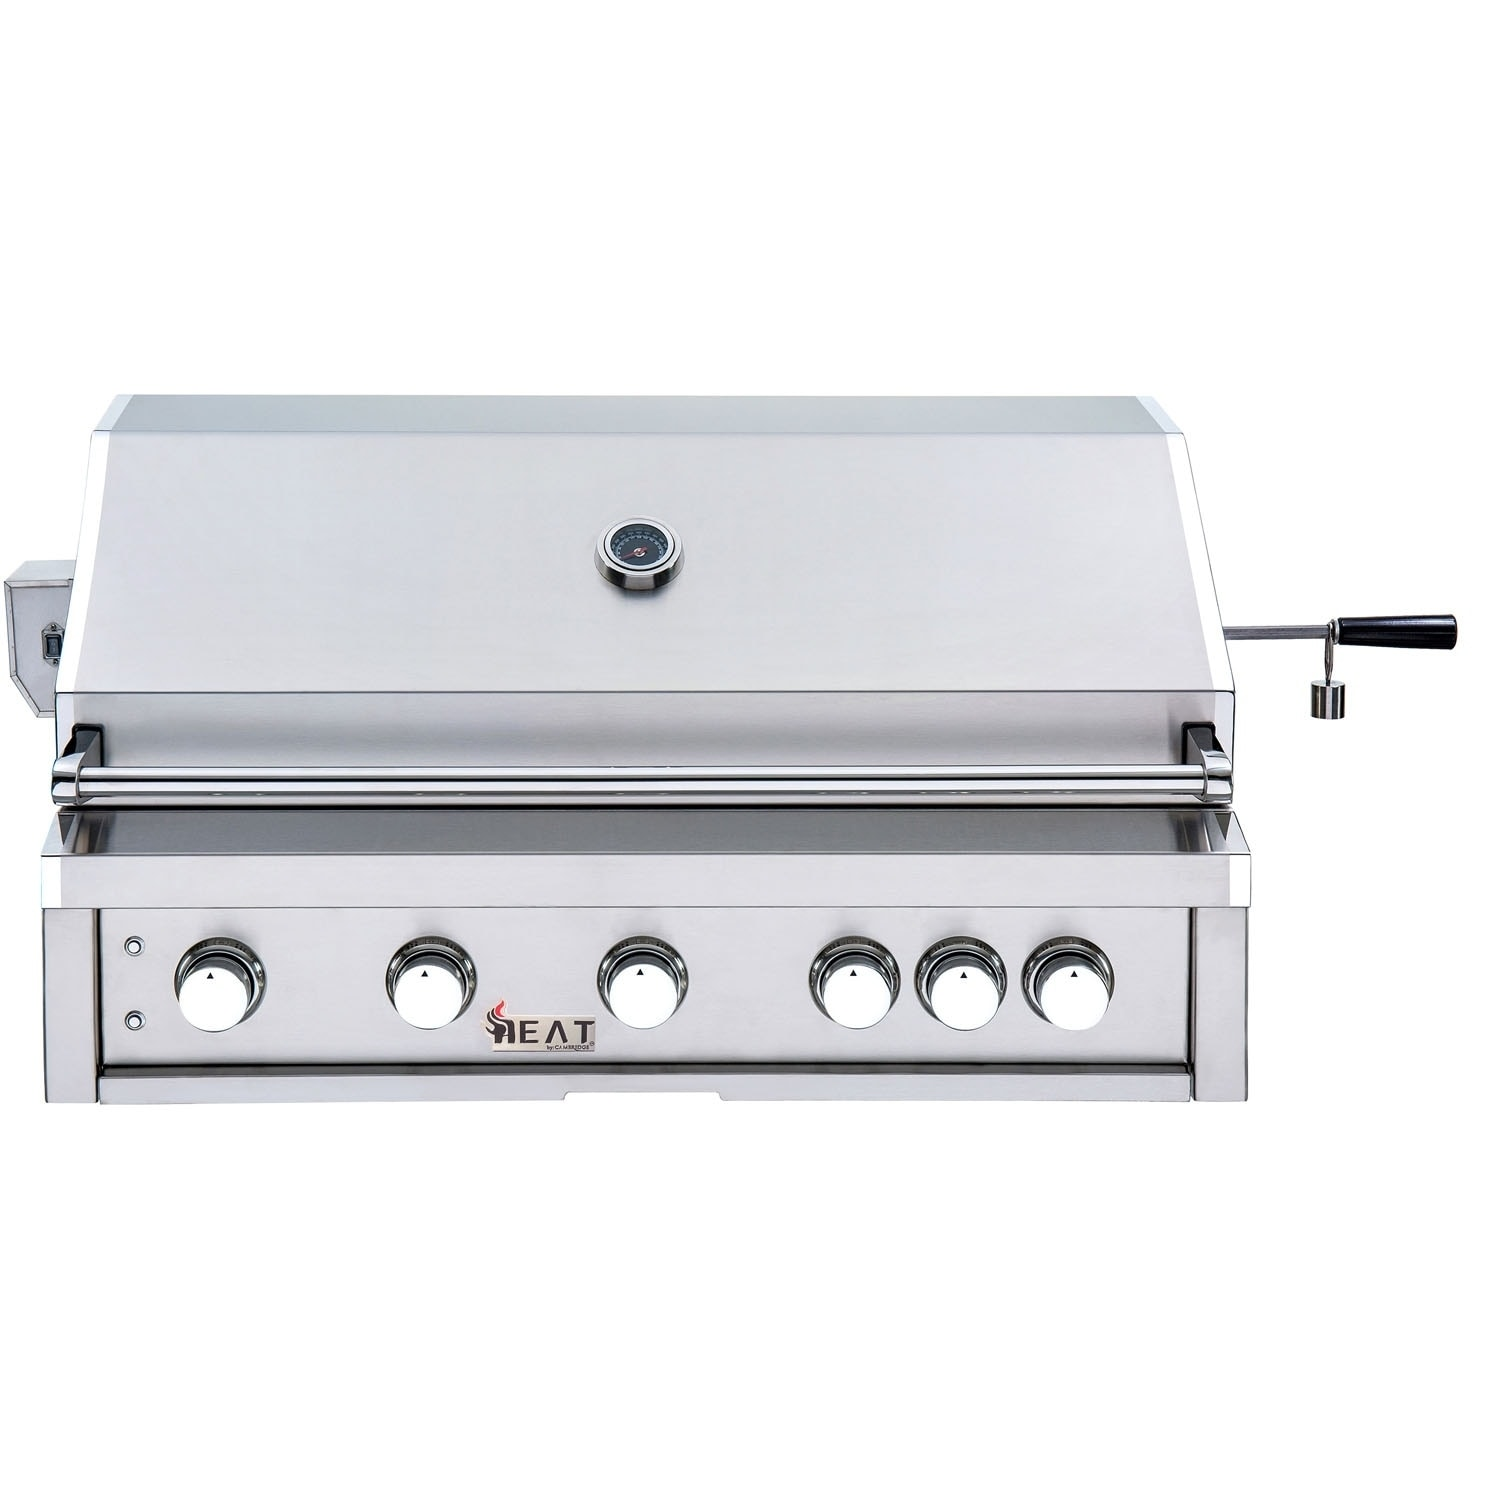 Heat 40 In Built In 5 Burner Liquid Propane Gas Grill In Stainless Steel With 1 Infrared Burner And Bonus Rotisserie Kit Overstock 27983235